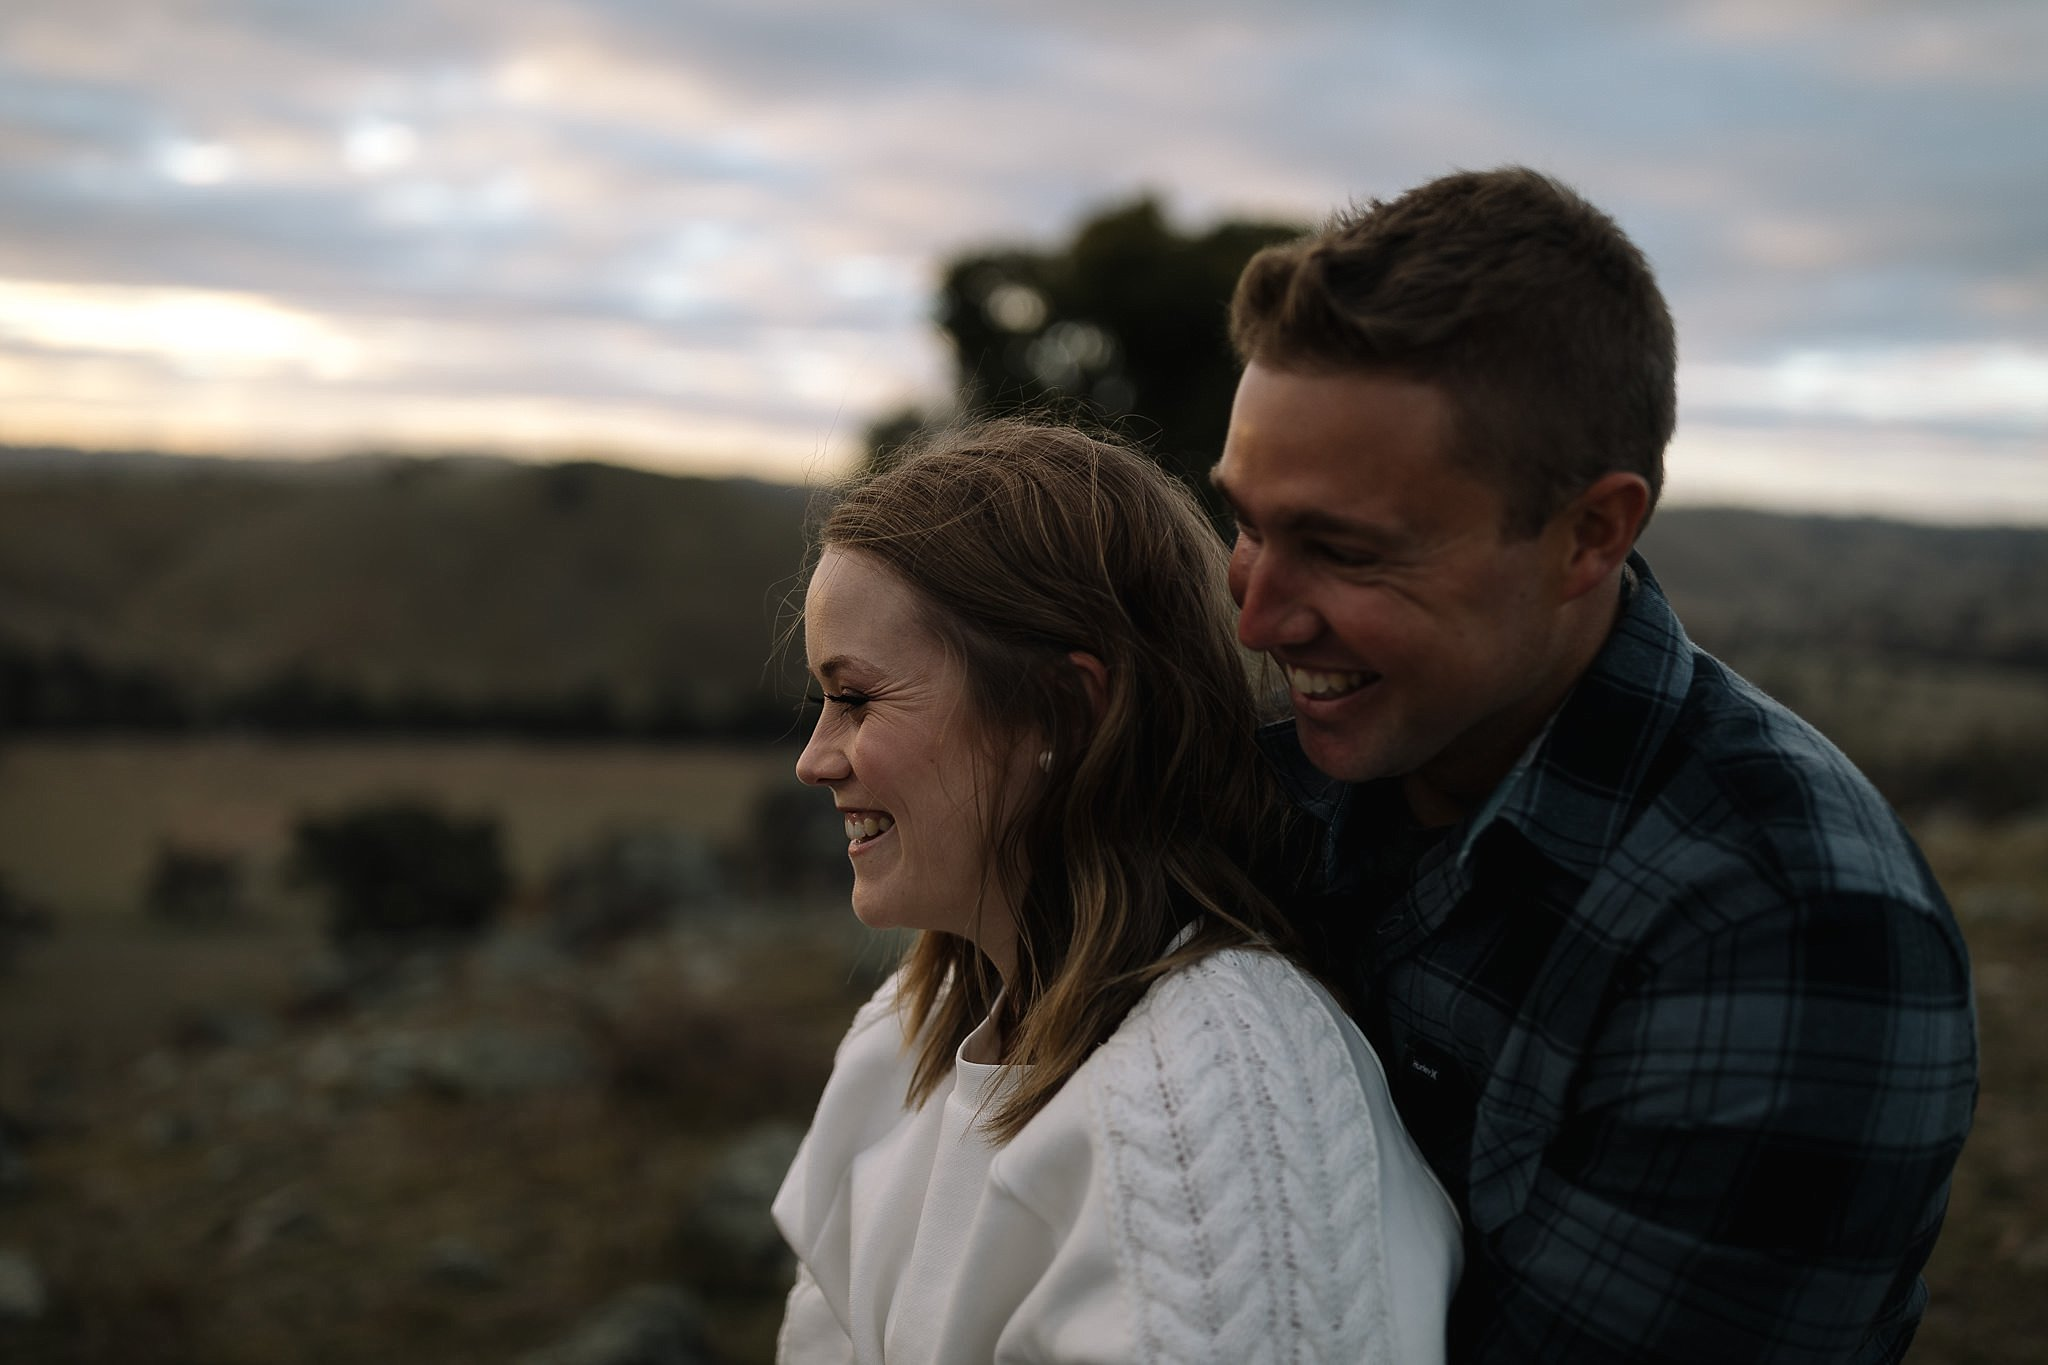 Canberra Portrait Photography,Engagement Photography,Keepsakephoto by the Keeffes,ACT wedding photographer,ACT weddings,destination wedding photography,winter engagement session,